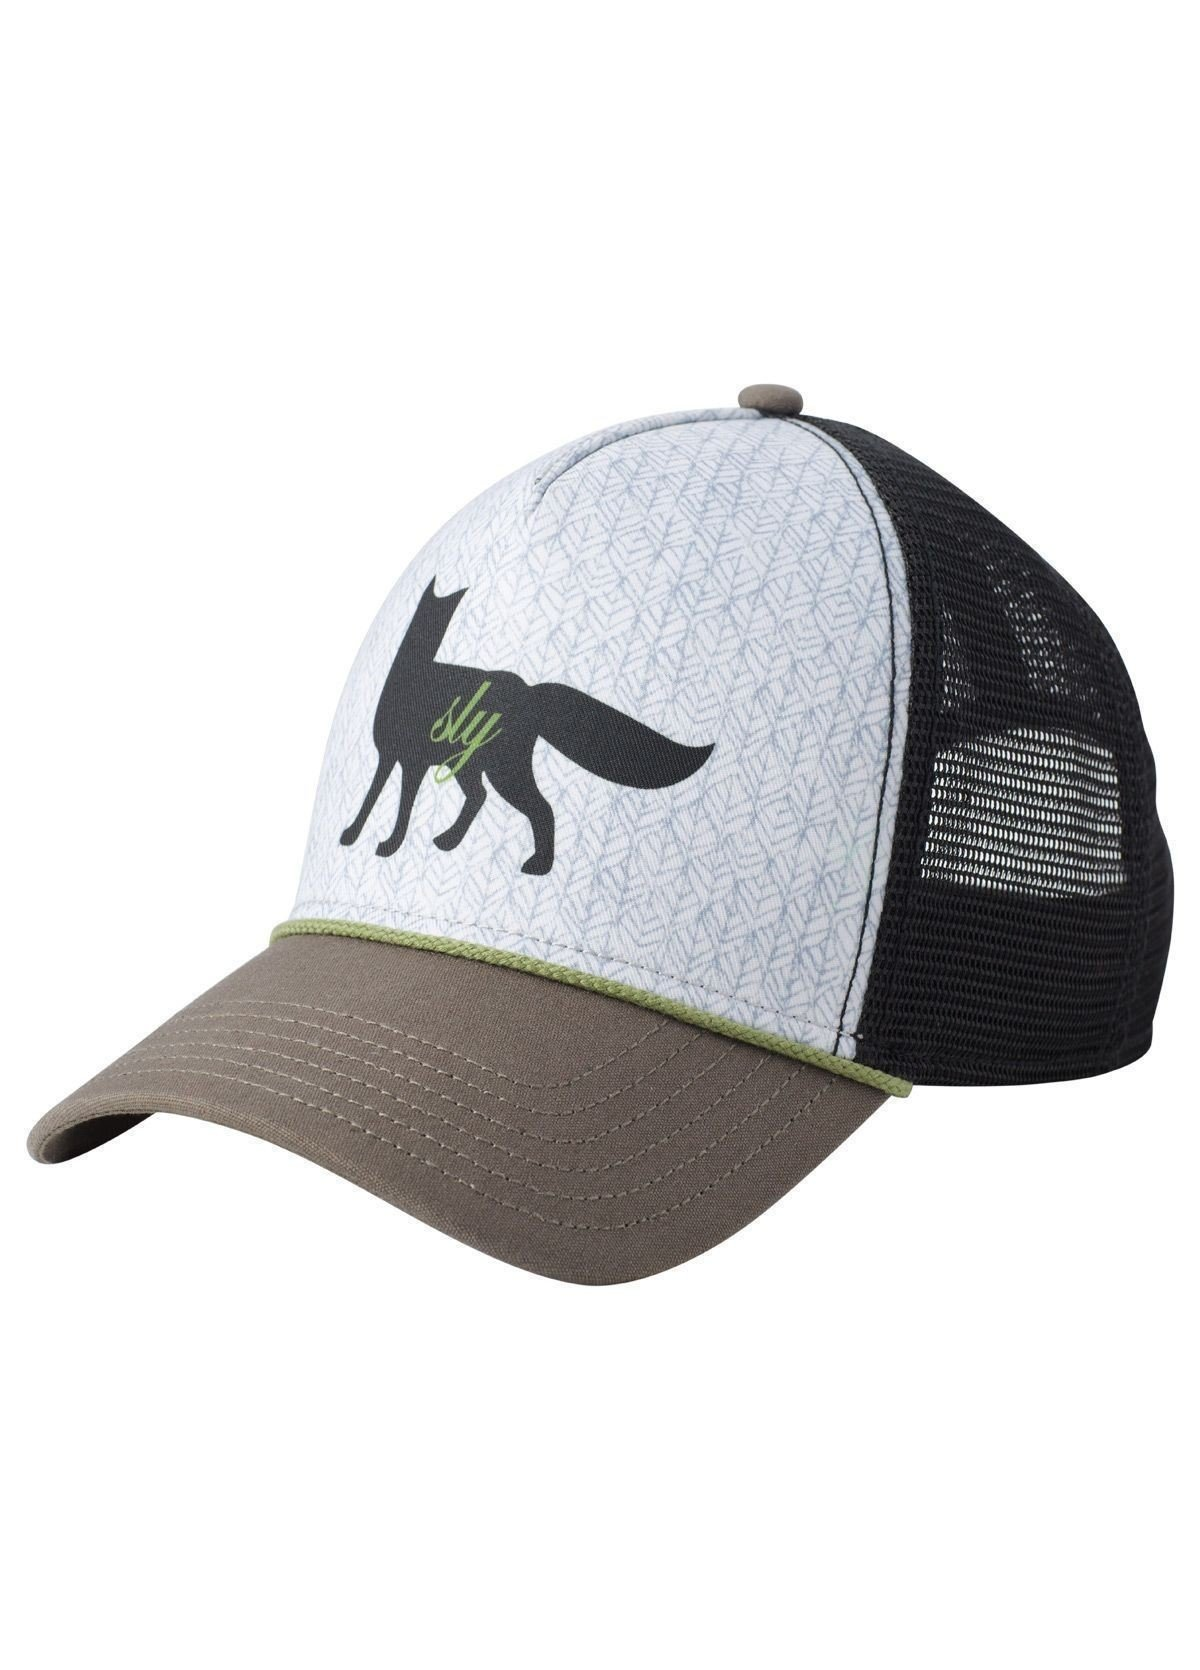 prAna Women's Journeyman Trucker Hat Sly Fox PRFOX